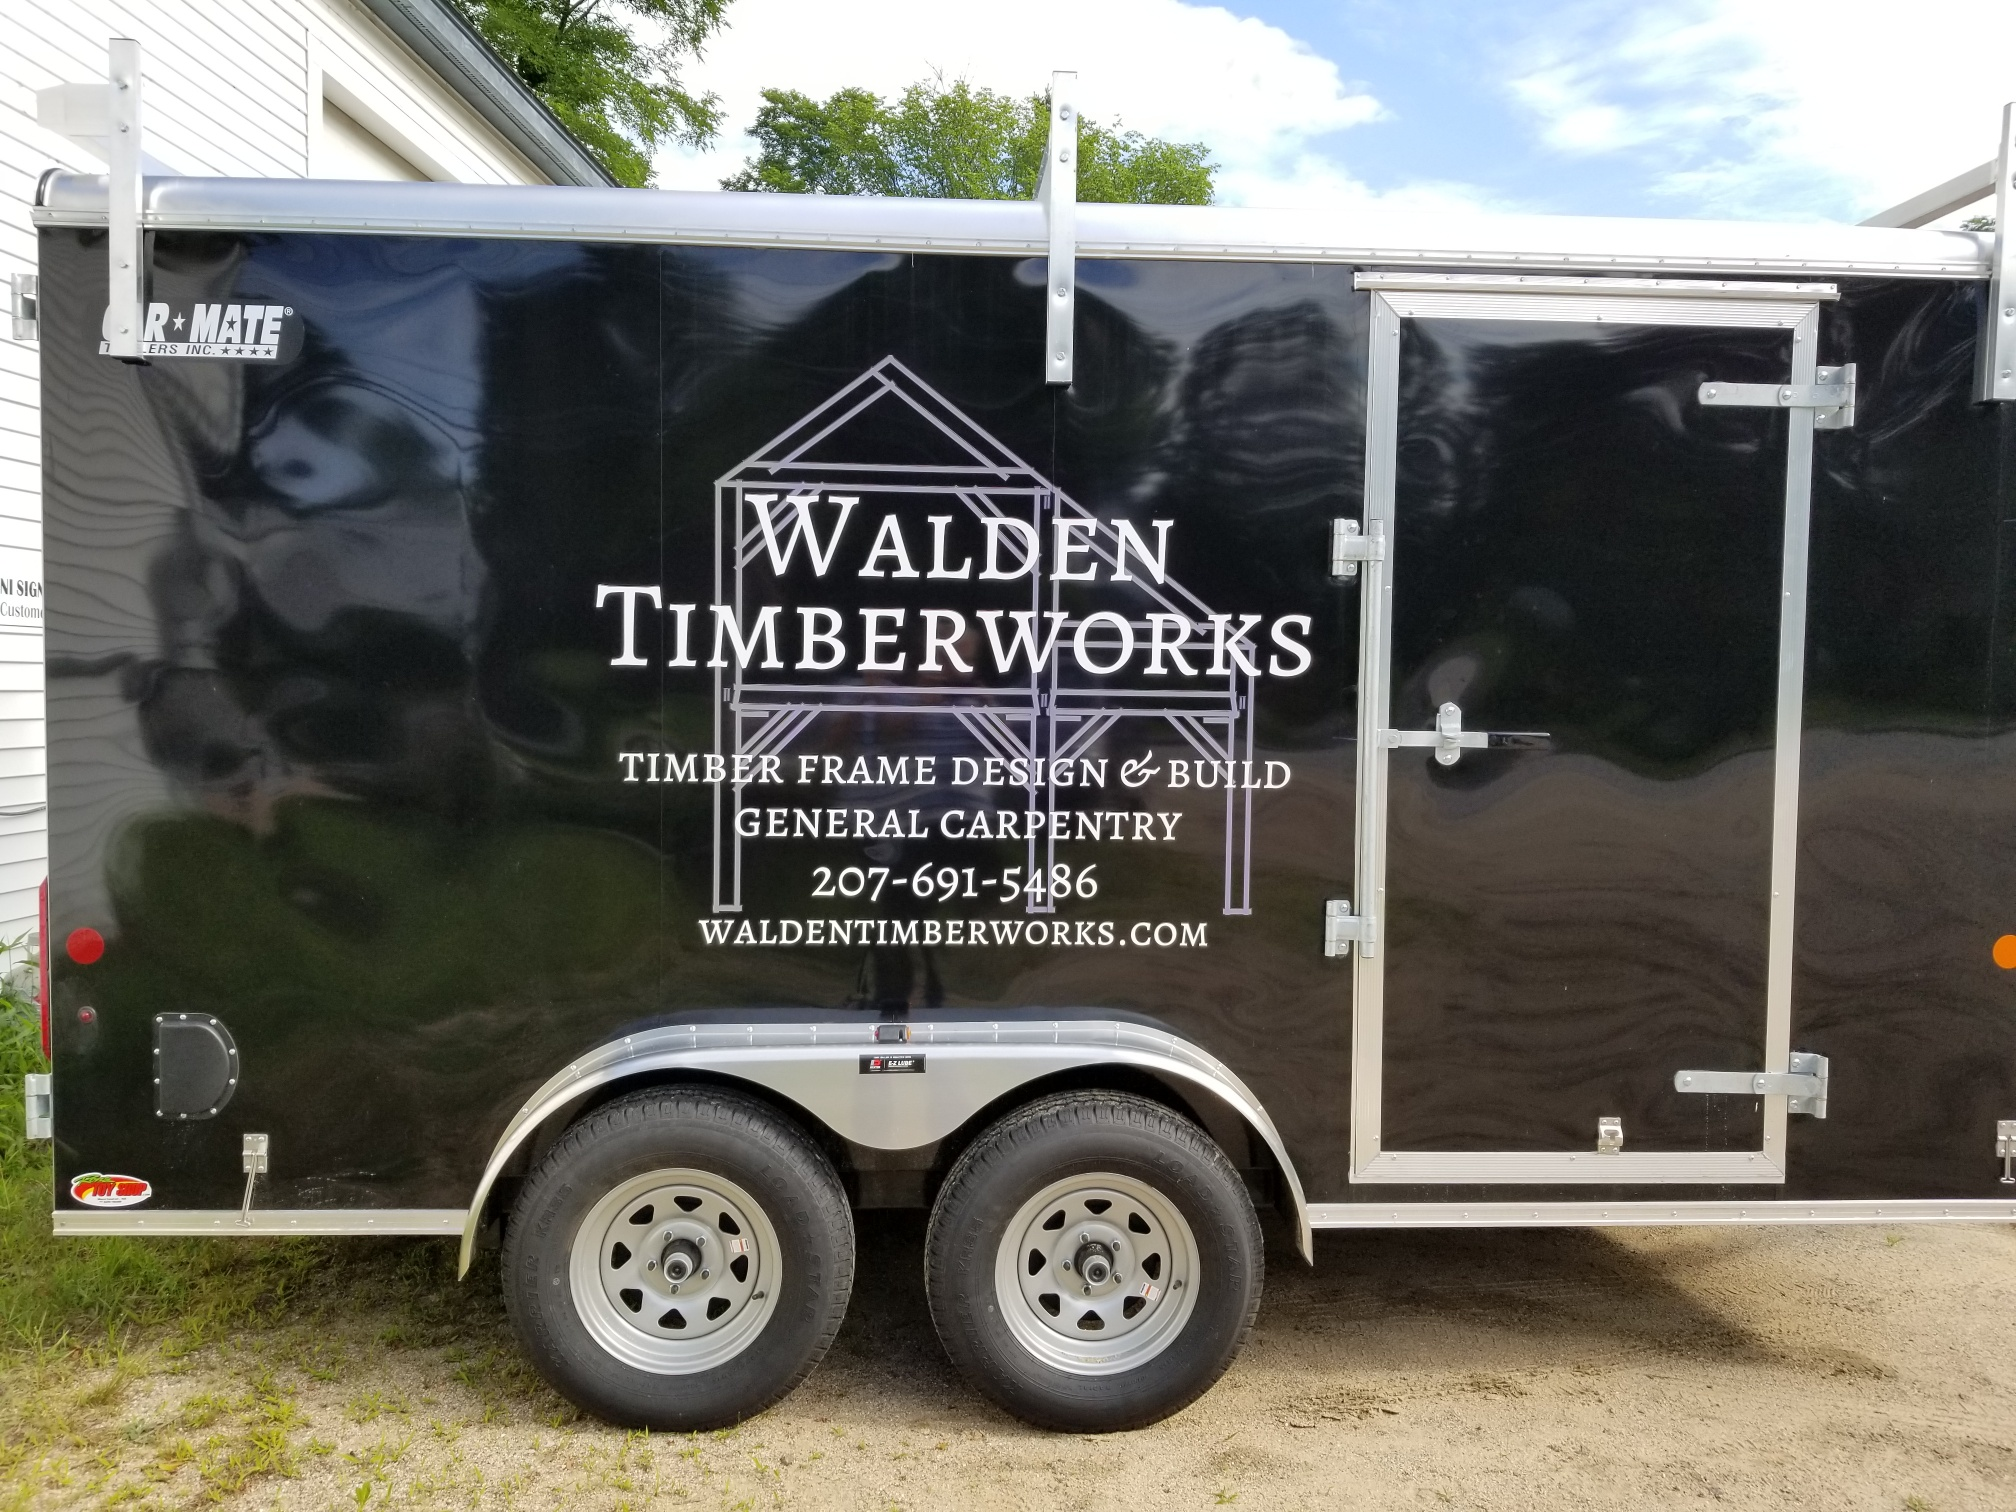 walden timberworks 2 photo